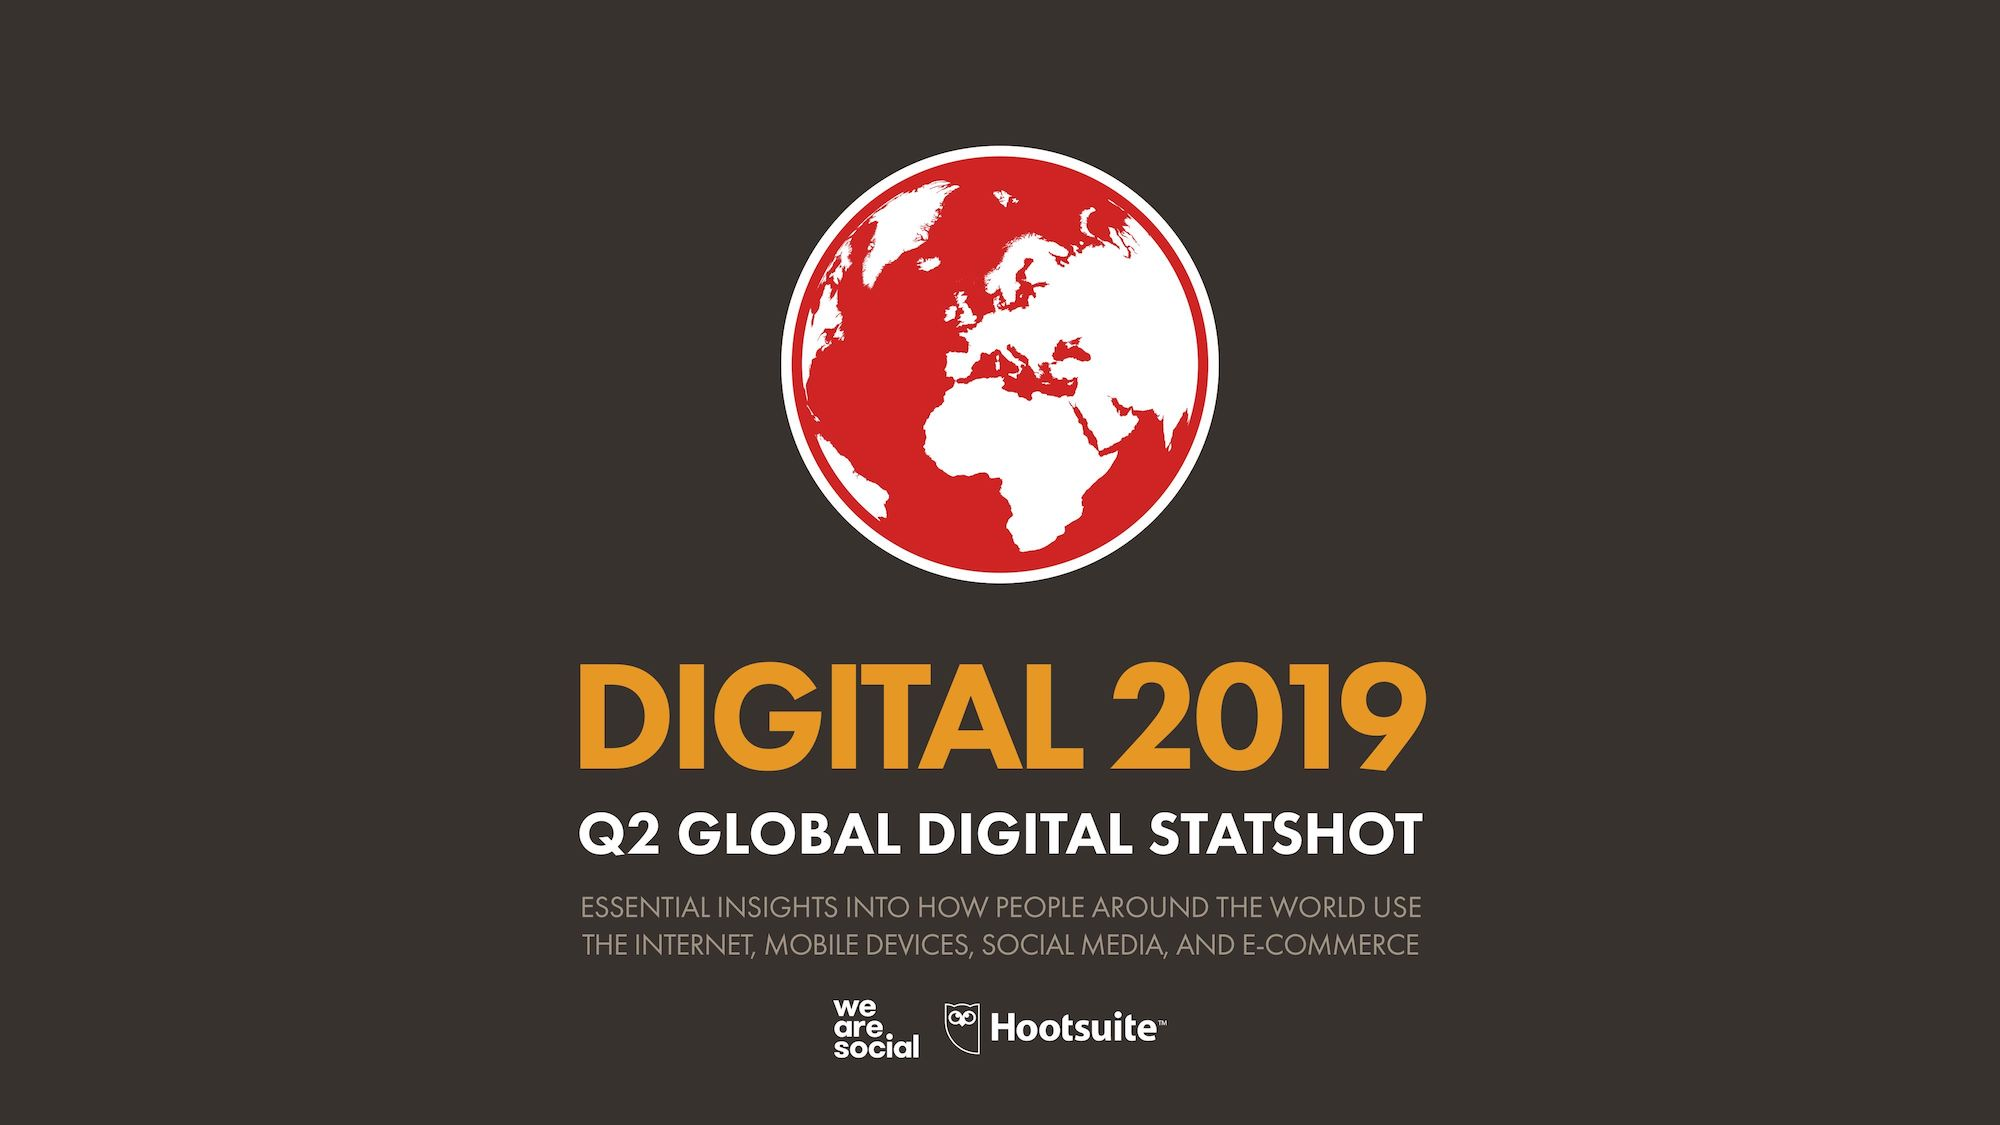 Digital Global Statshot Q2 2019 for Middle East